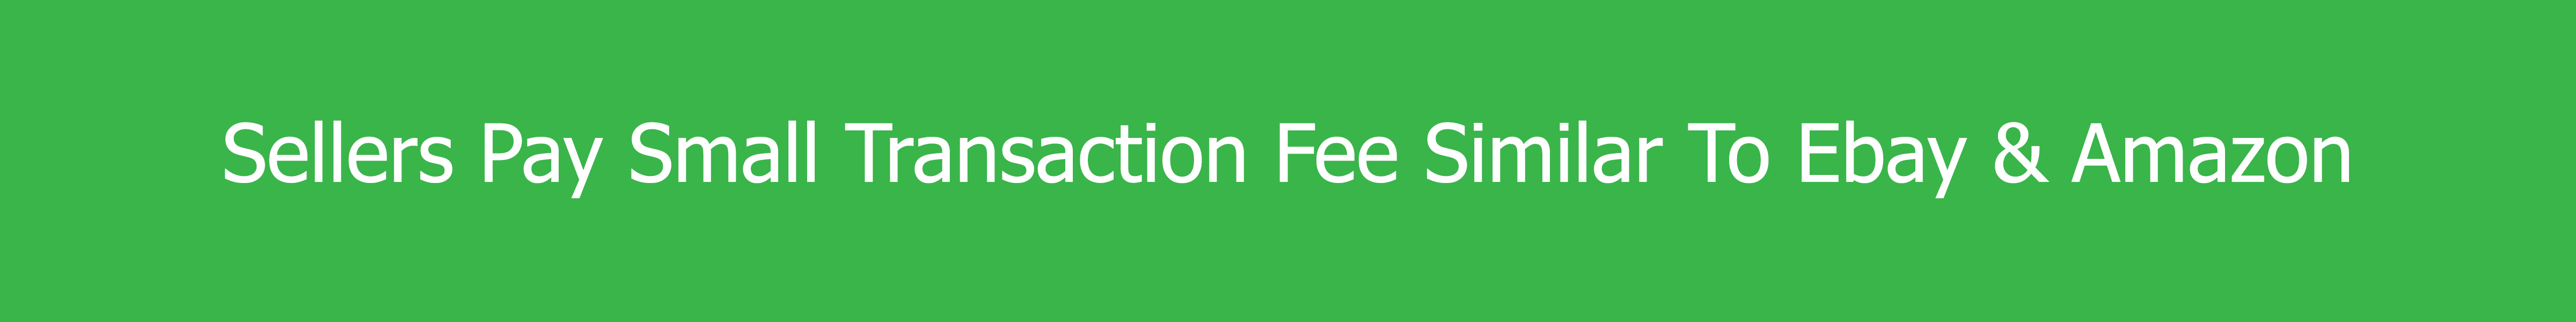 Sellers Pay Small Transaction Fee | Trxade